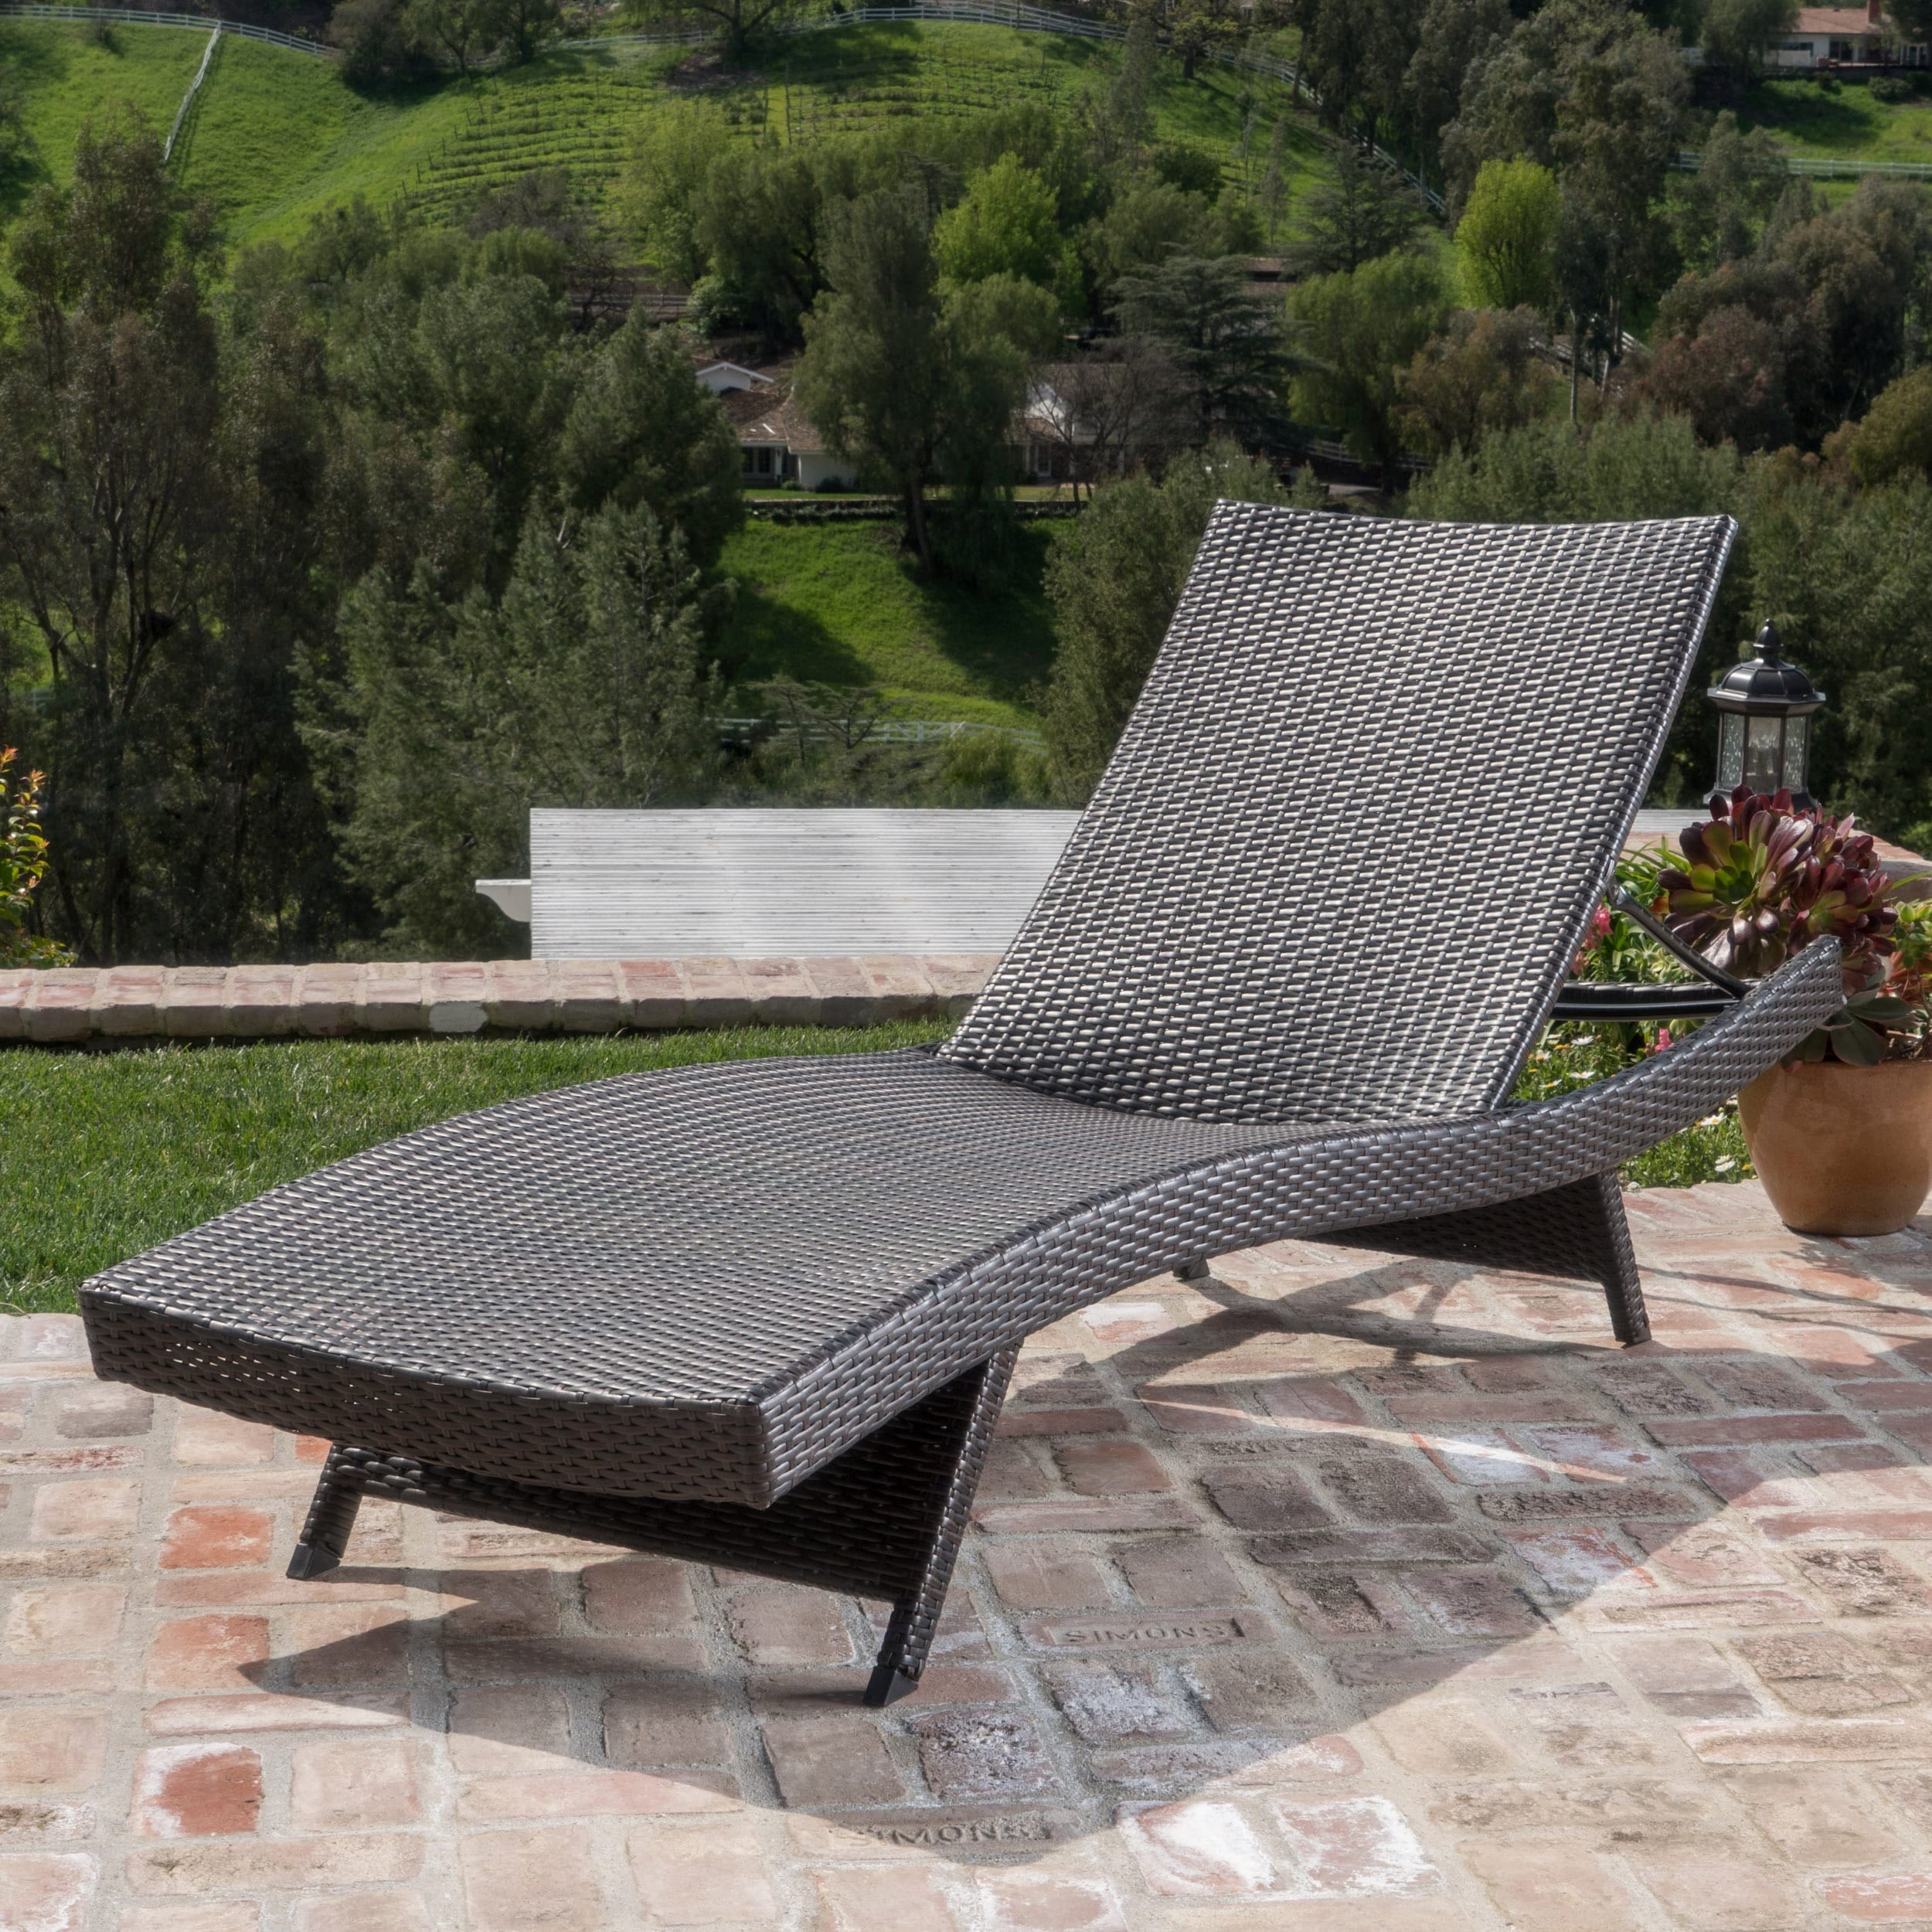 Round Folding Dining Table, Shop Thira Outdoor Aluminum Wicker Chaise Lounge Chair By Christopher Knight Home Overstock 15425008